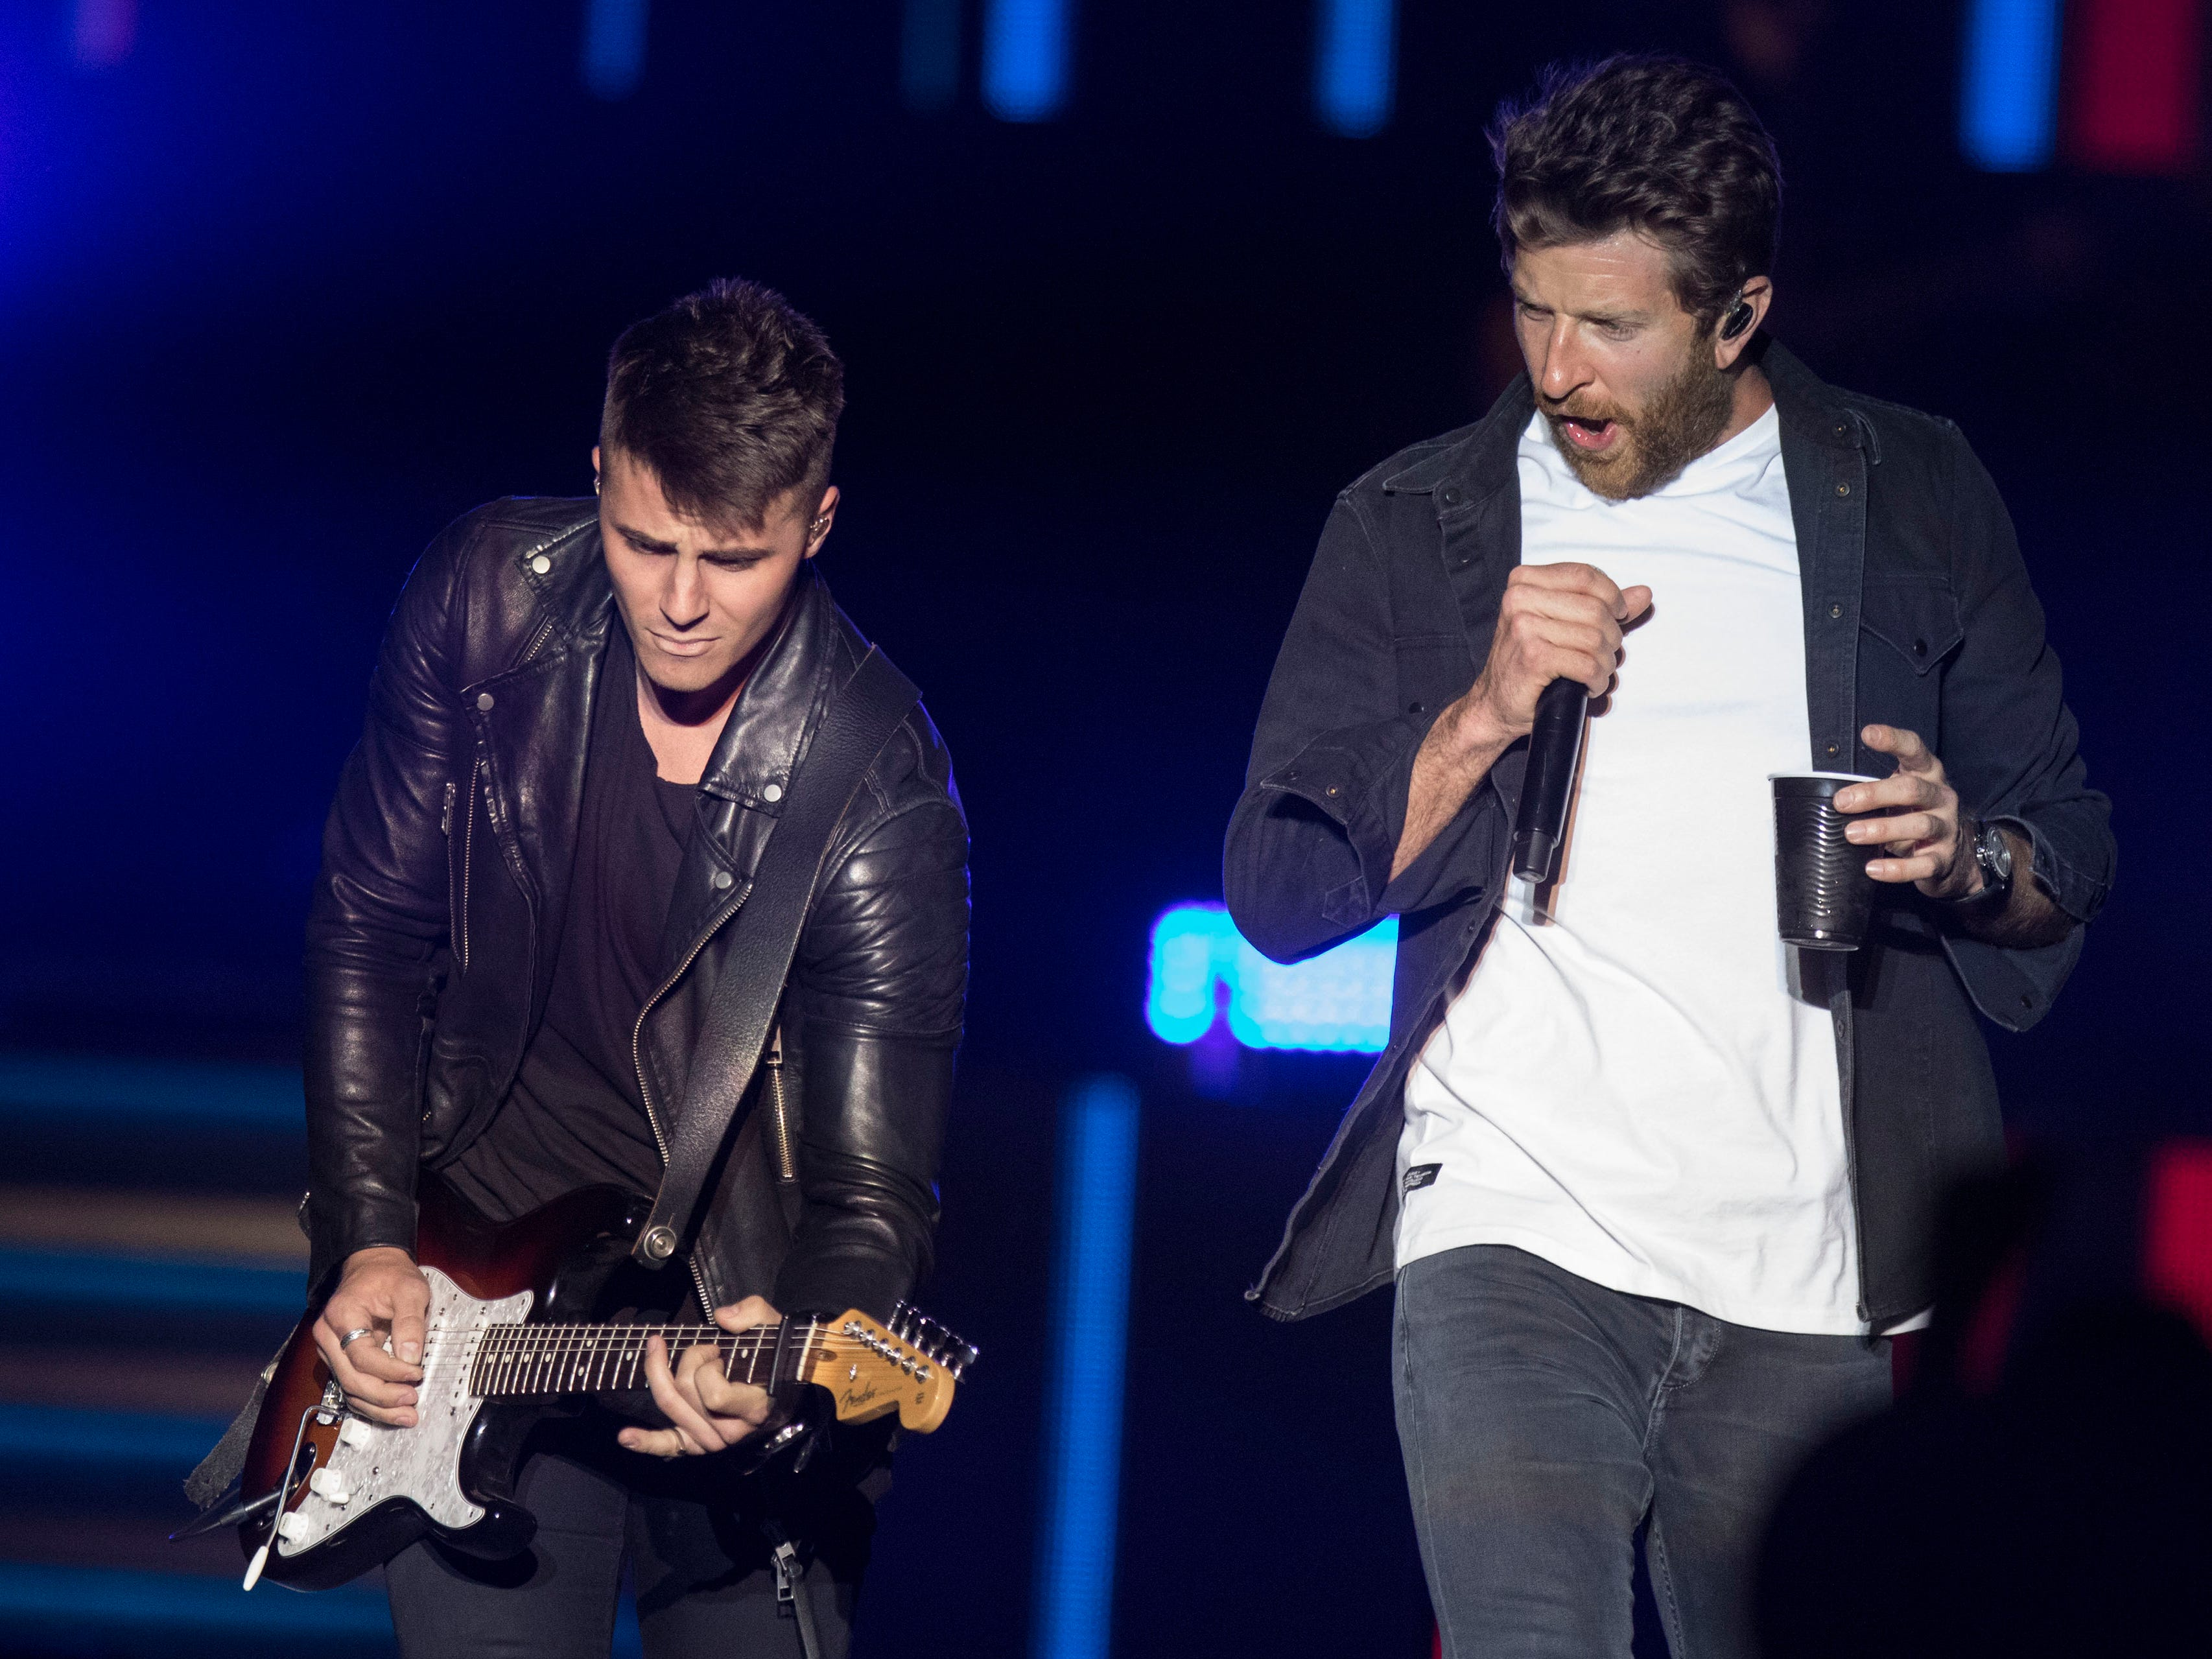 Brett Eldredge (right) and his guitarist entertain the crowd  during Country Thunder Arizona on April 11, 2019, in Florence, Ariz.